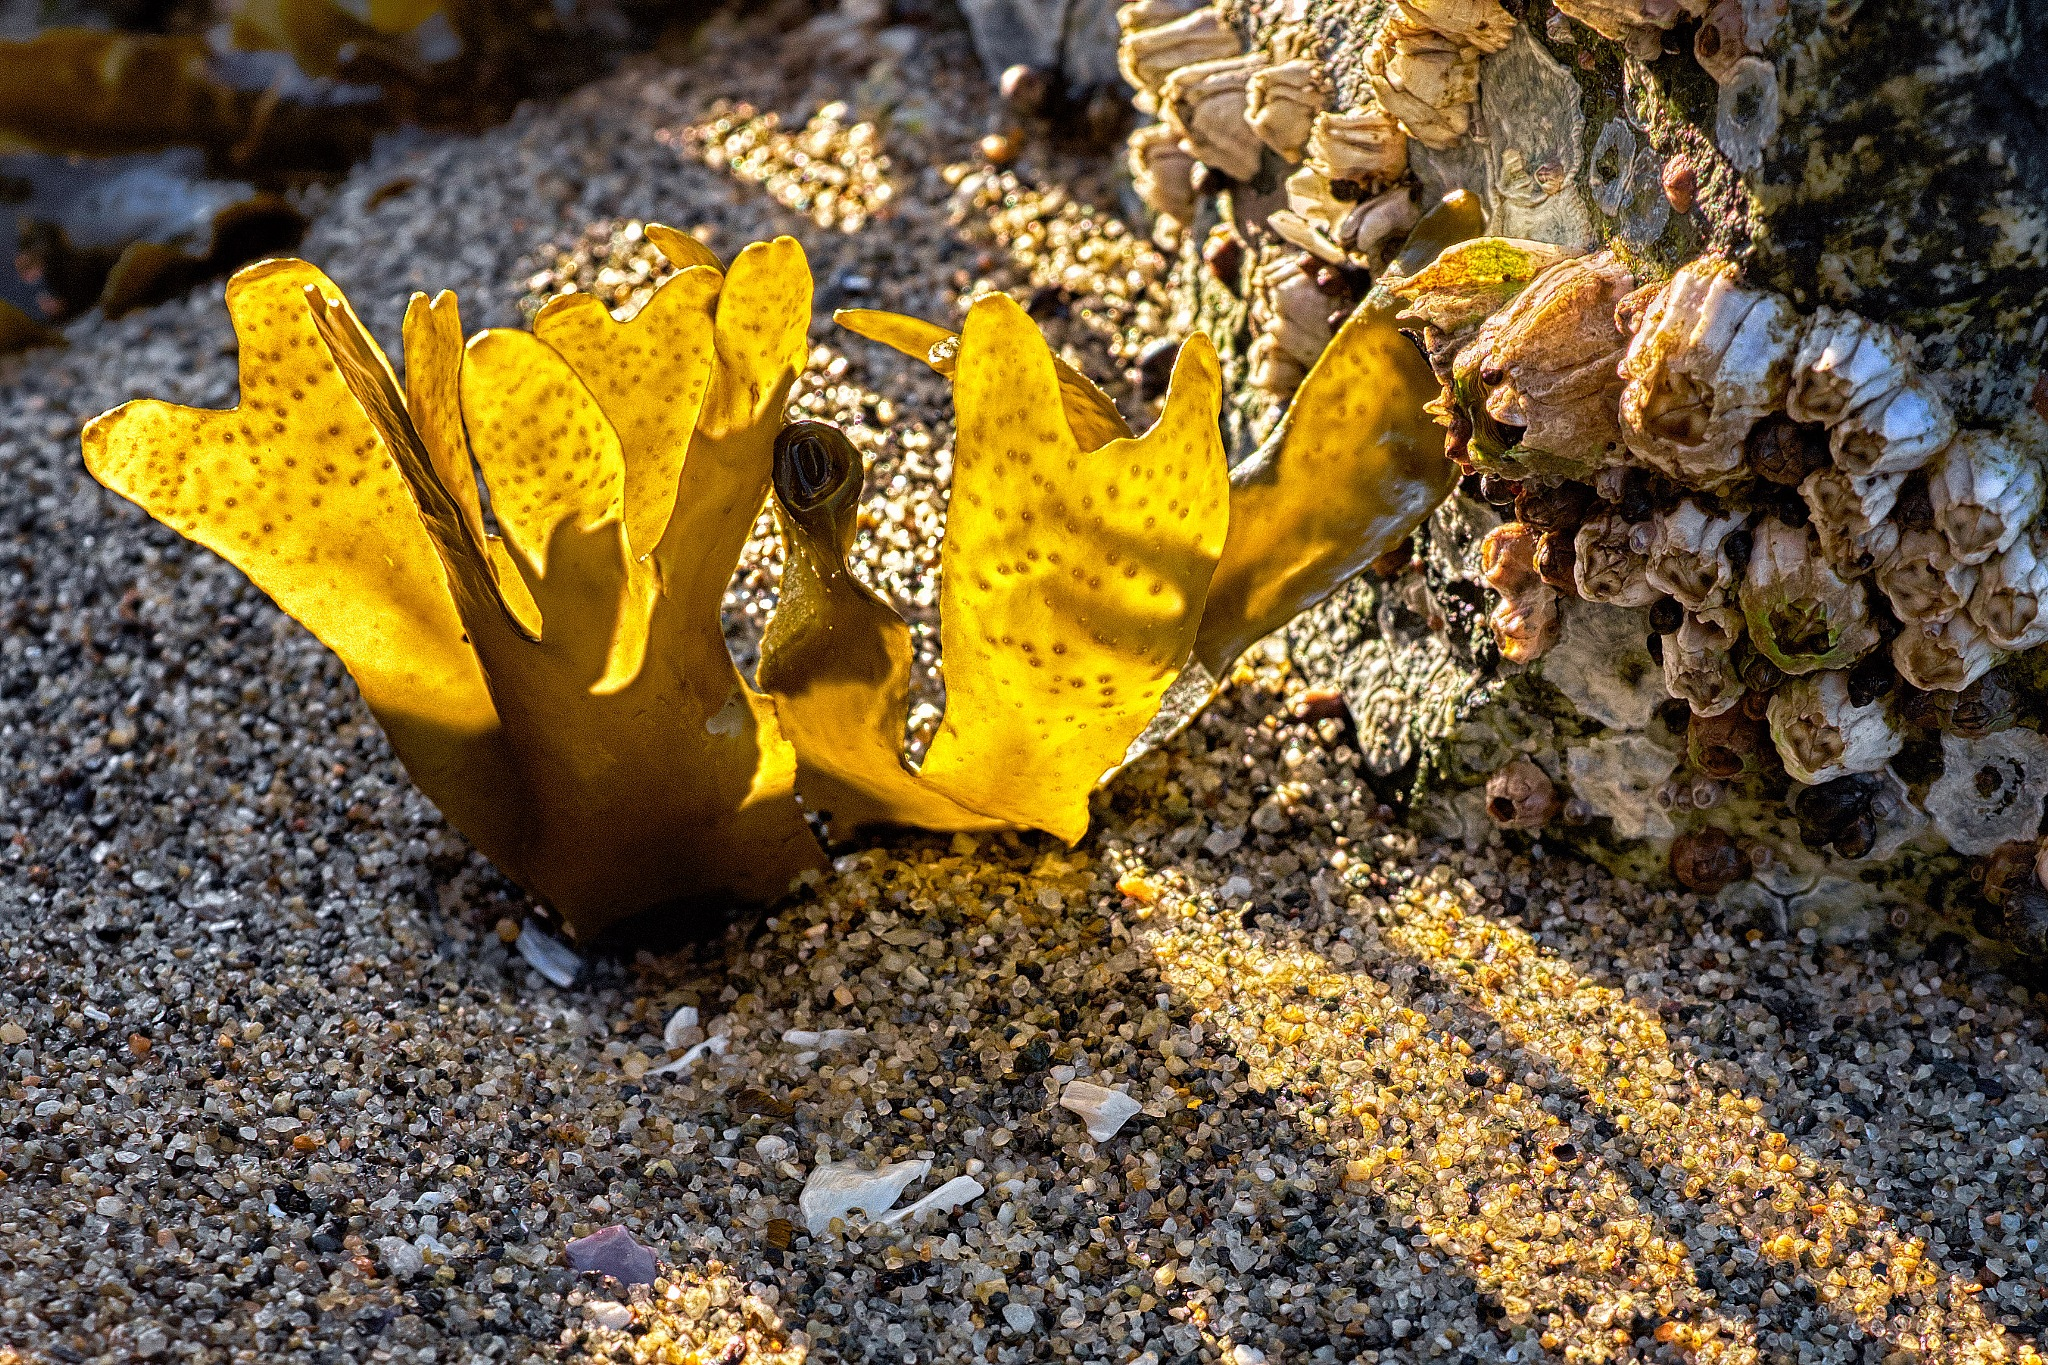 Seaweed and barnacles by Greg Mullaly